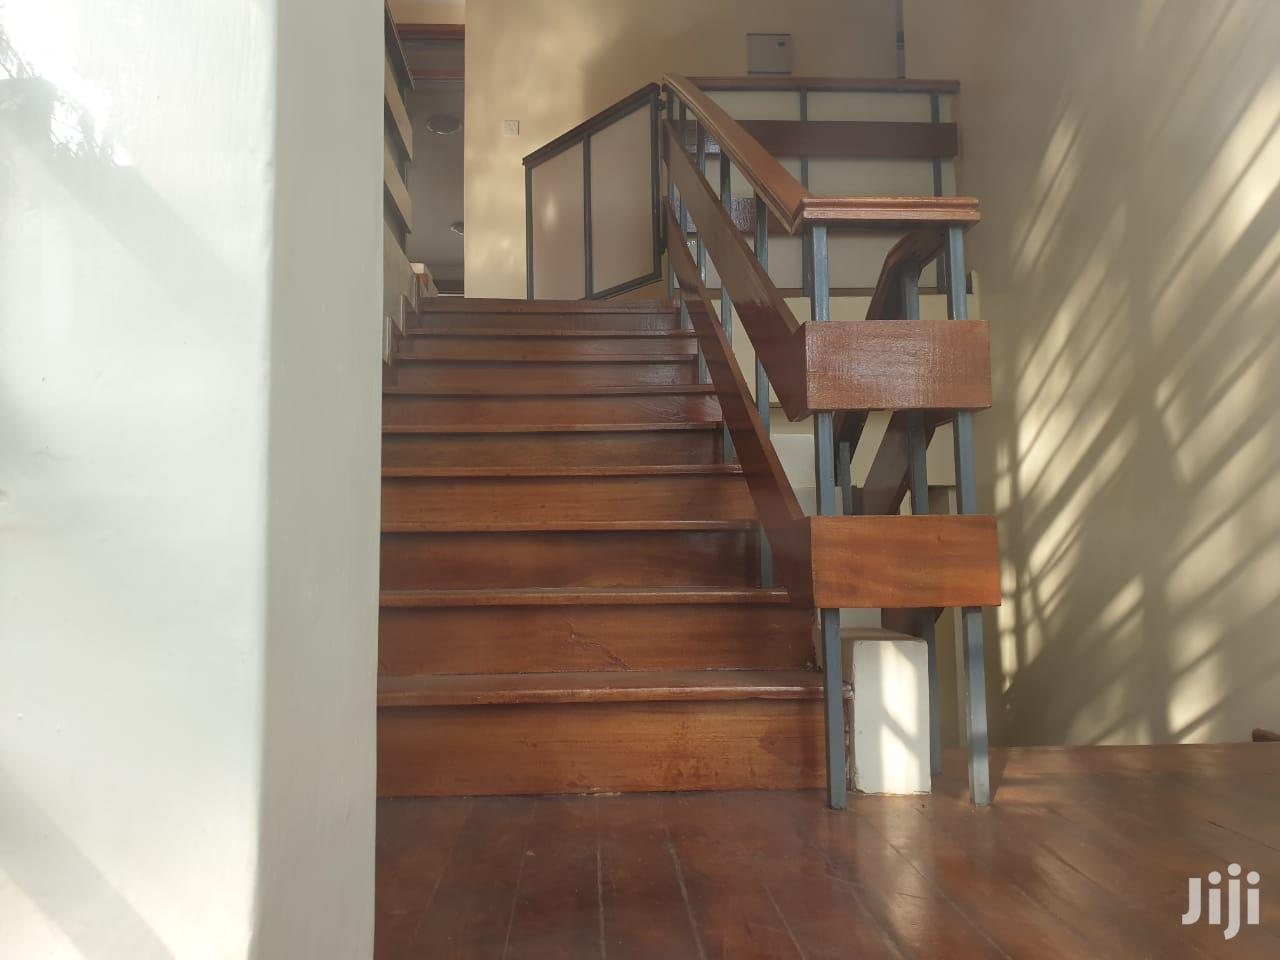 Luxurious Home! Nyari Five Bedroom Townhouse With DSQ. | Houses & Apartments For Sale for sale in Kitisuru, Nairobi, Kenya